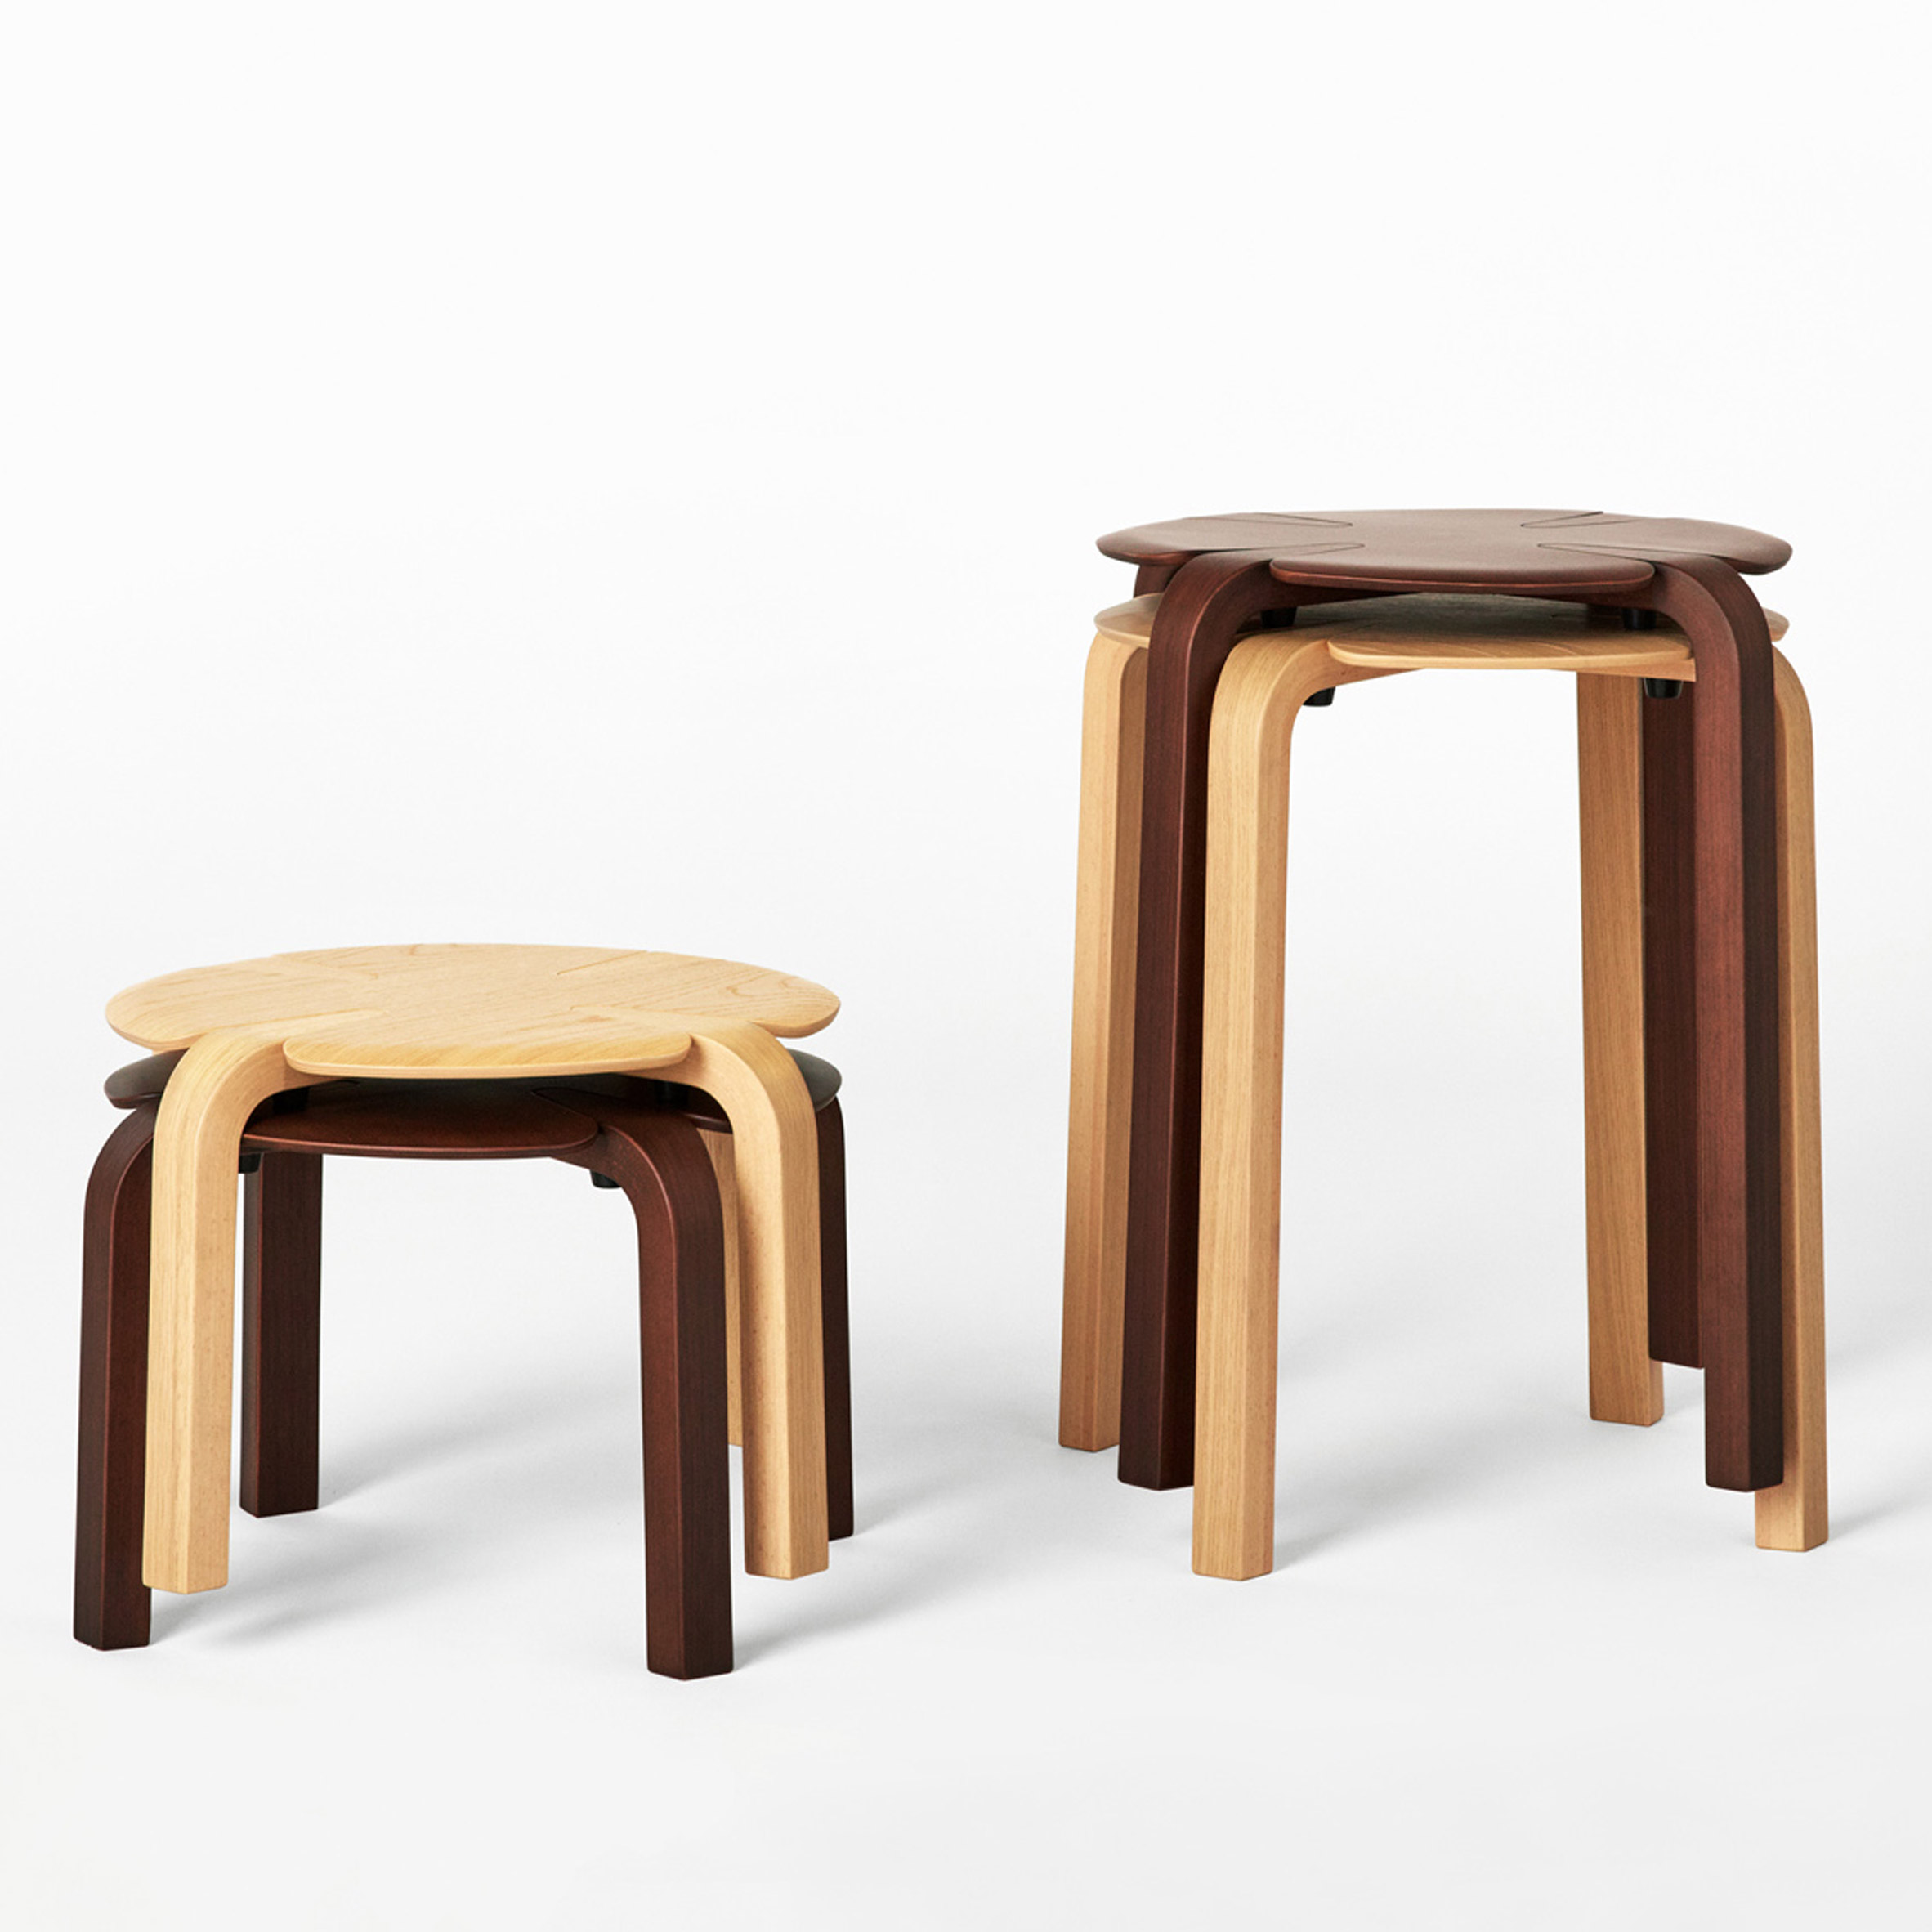 Richard Hutten designs stackable clover-shaped stools